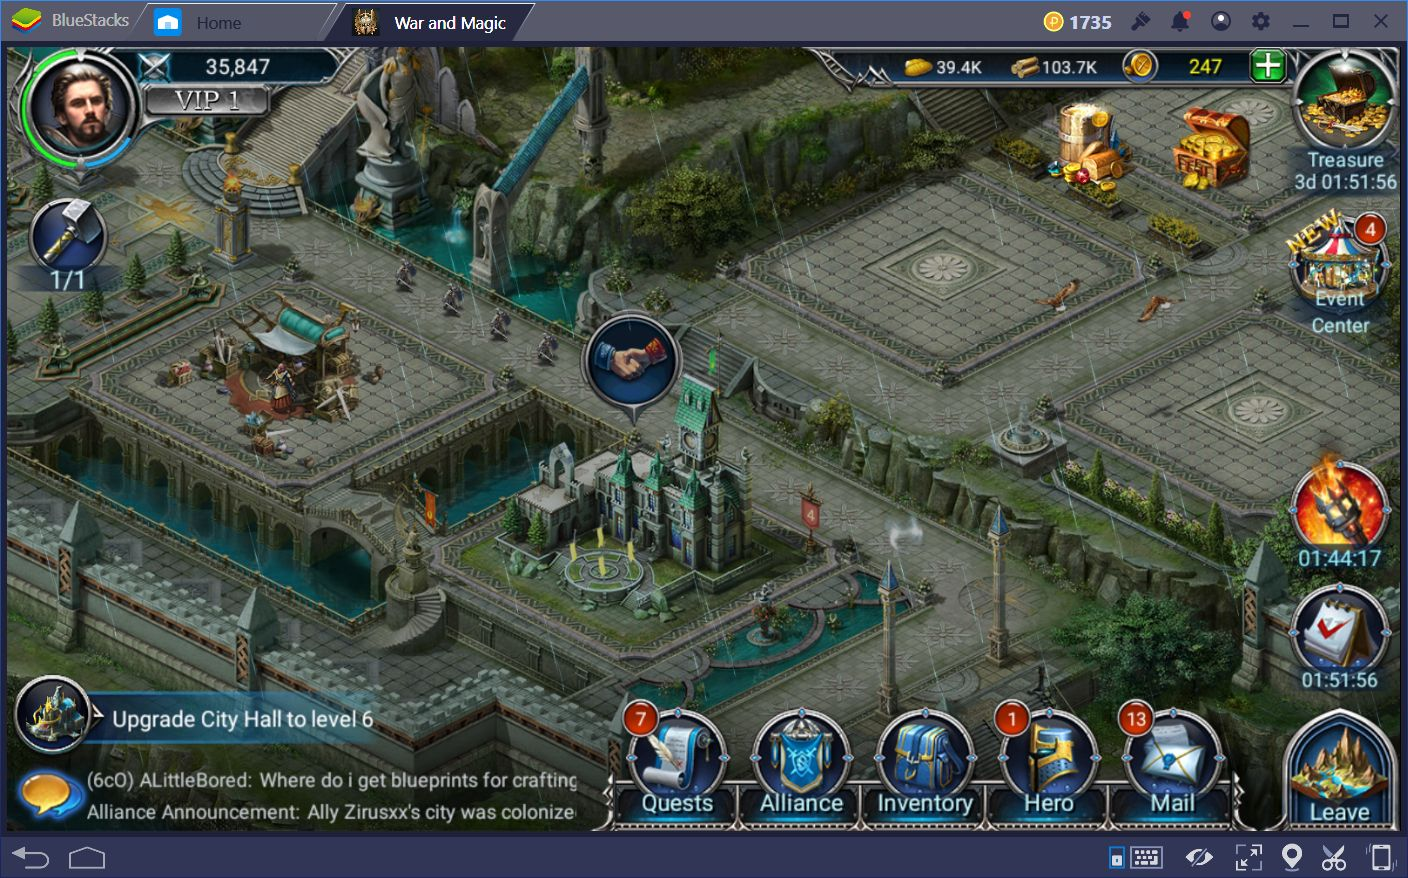 How to Improve Your Performance in War and Magic | BlueStacks